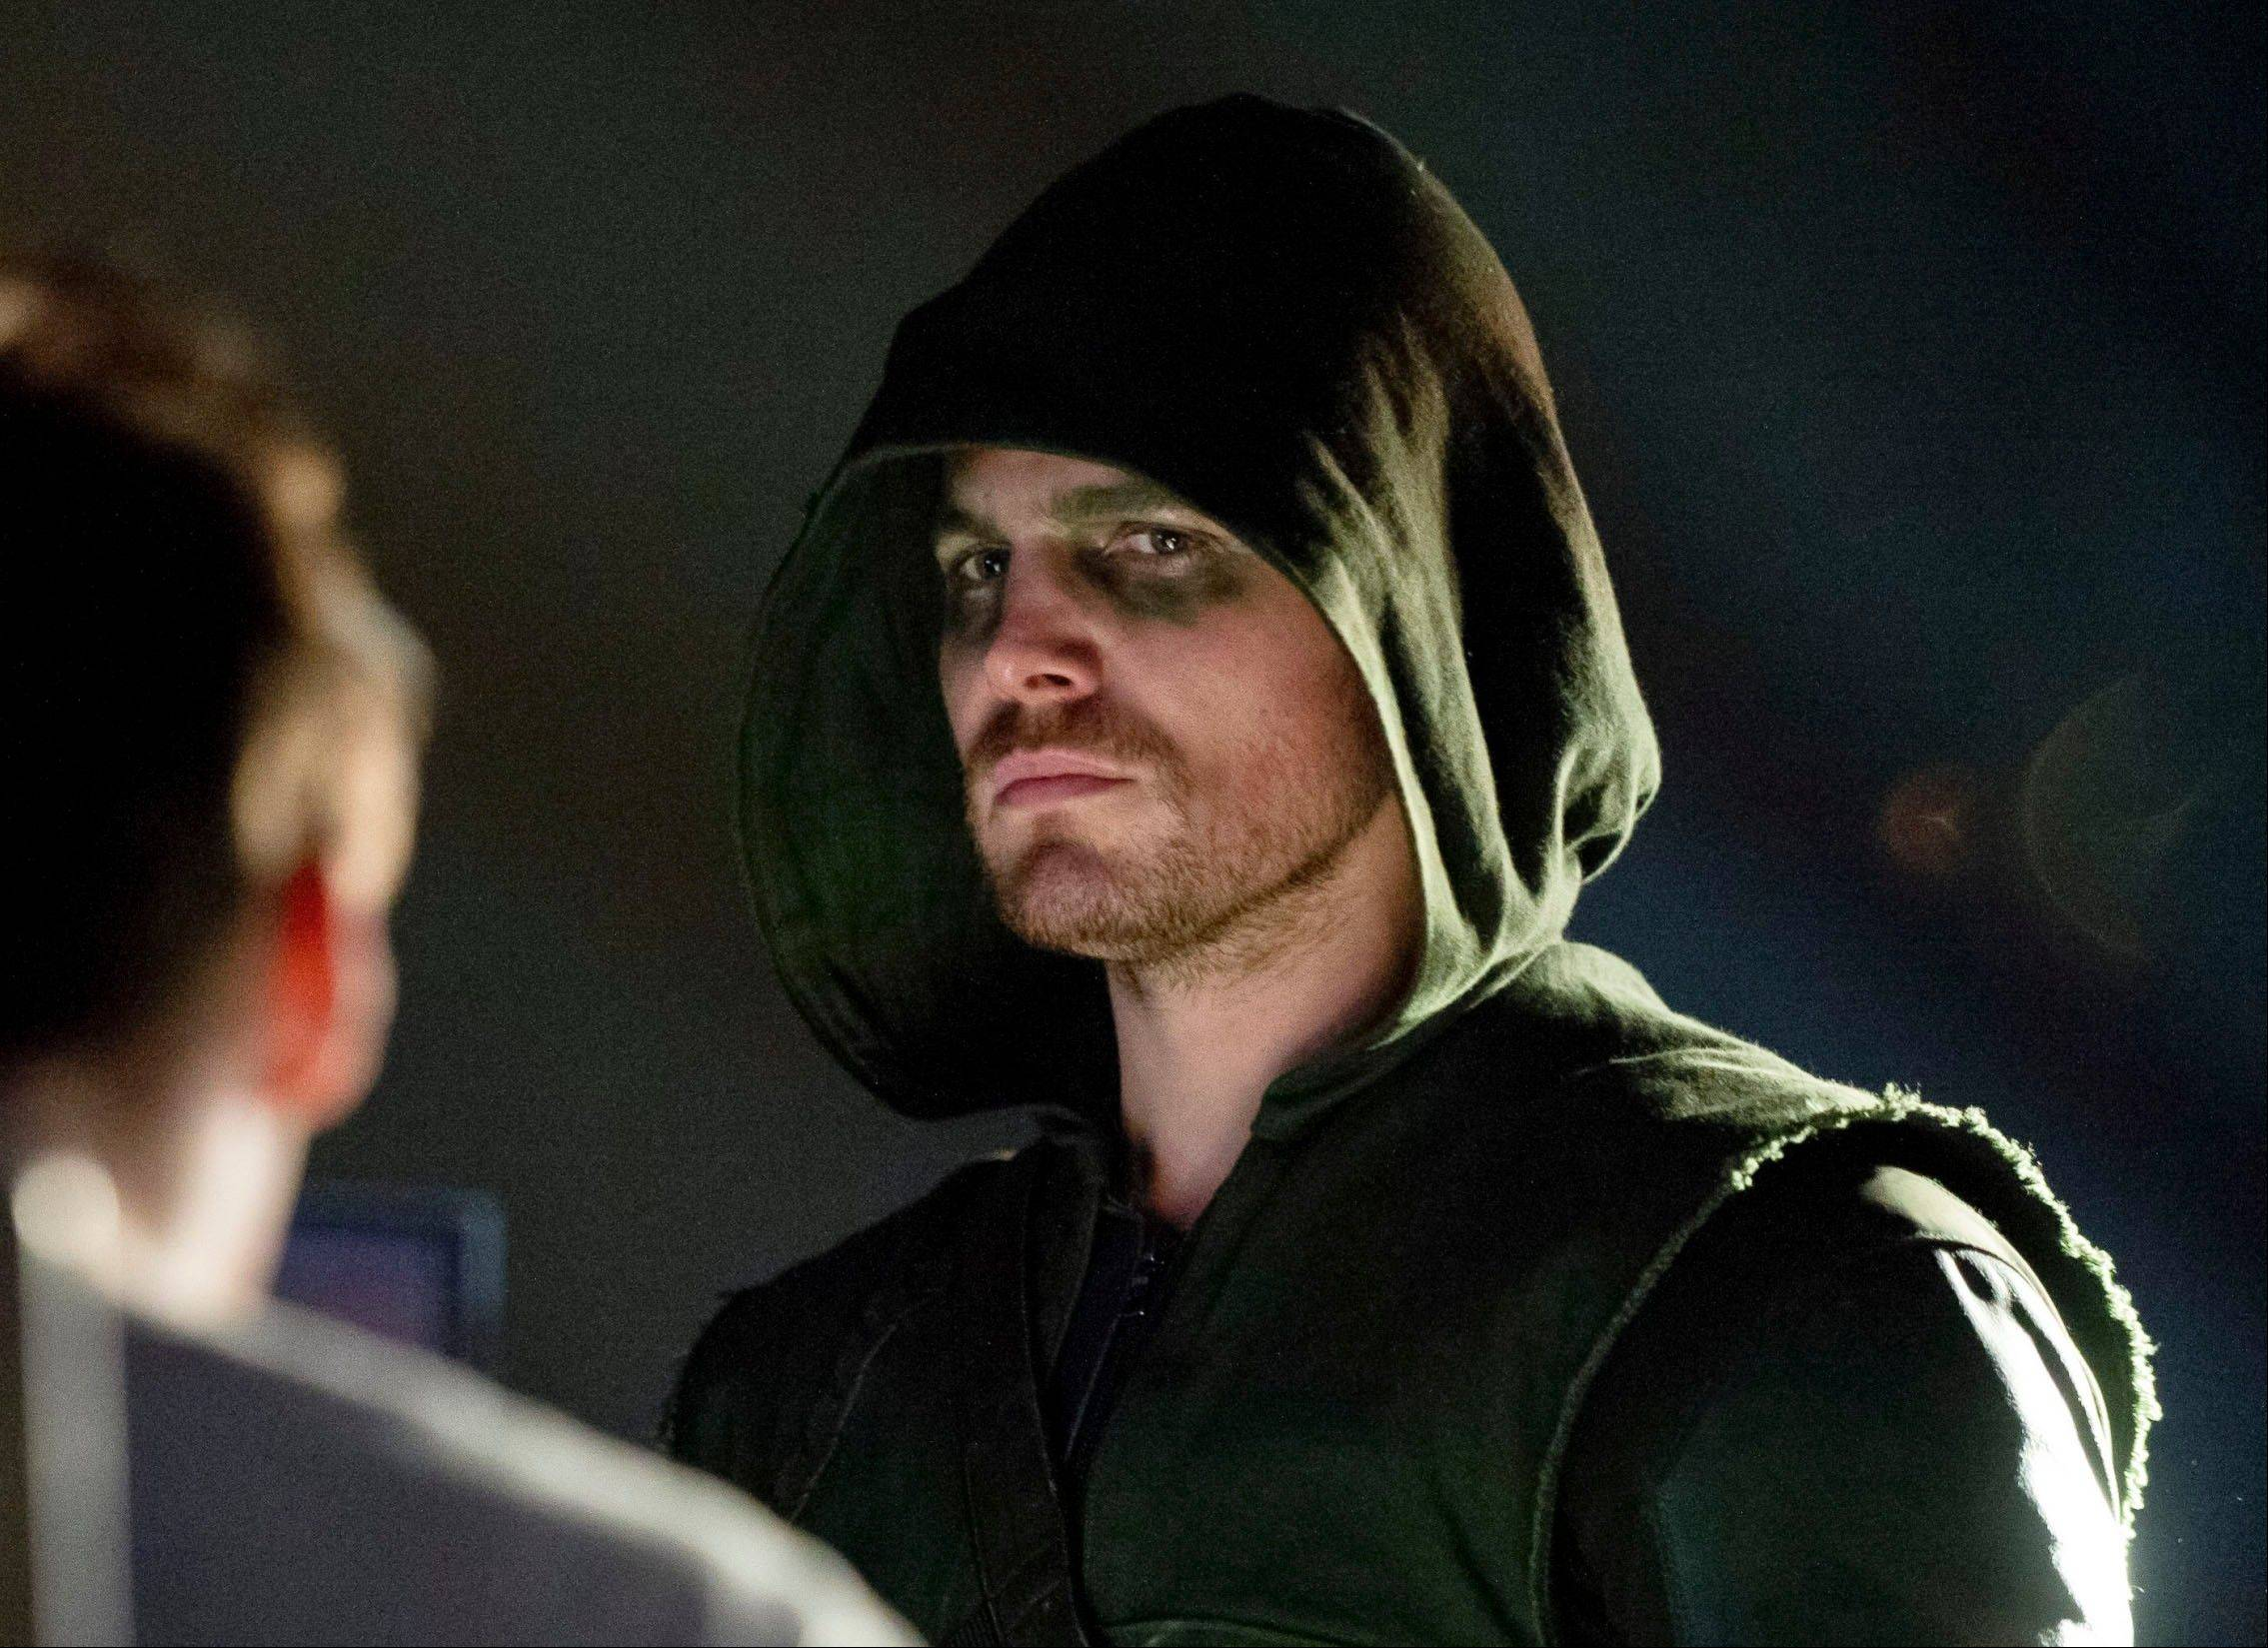 Stephen Amell as Oliver Queen/Arrow in a scene from �Arrow.�